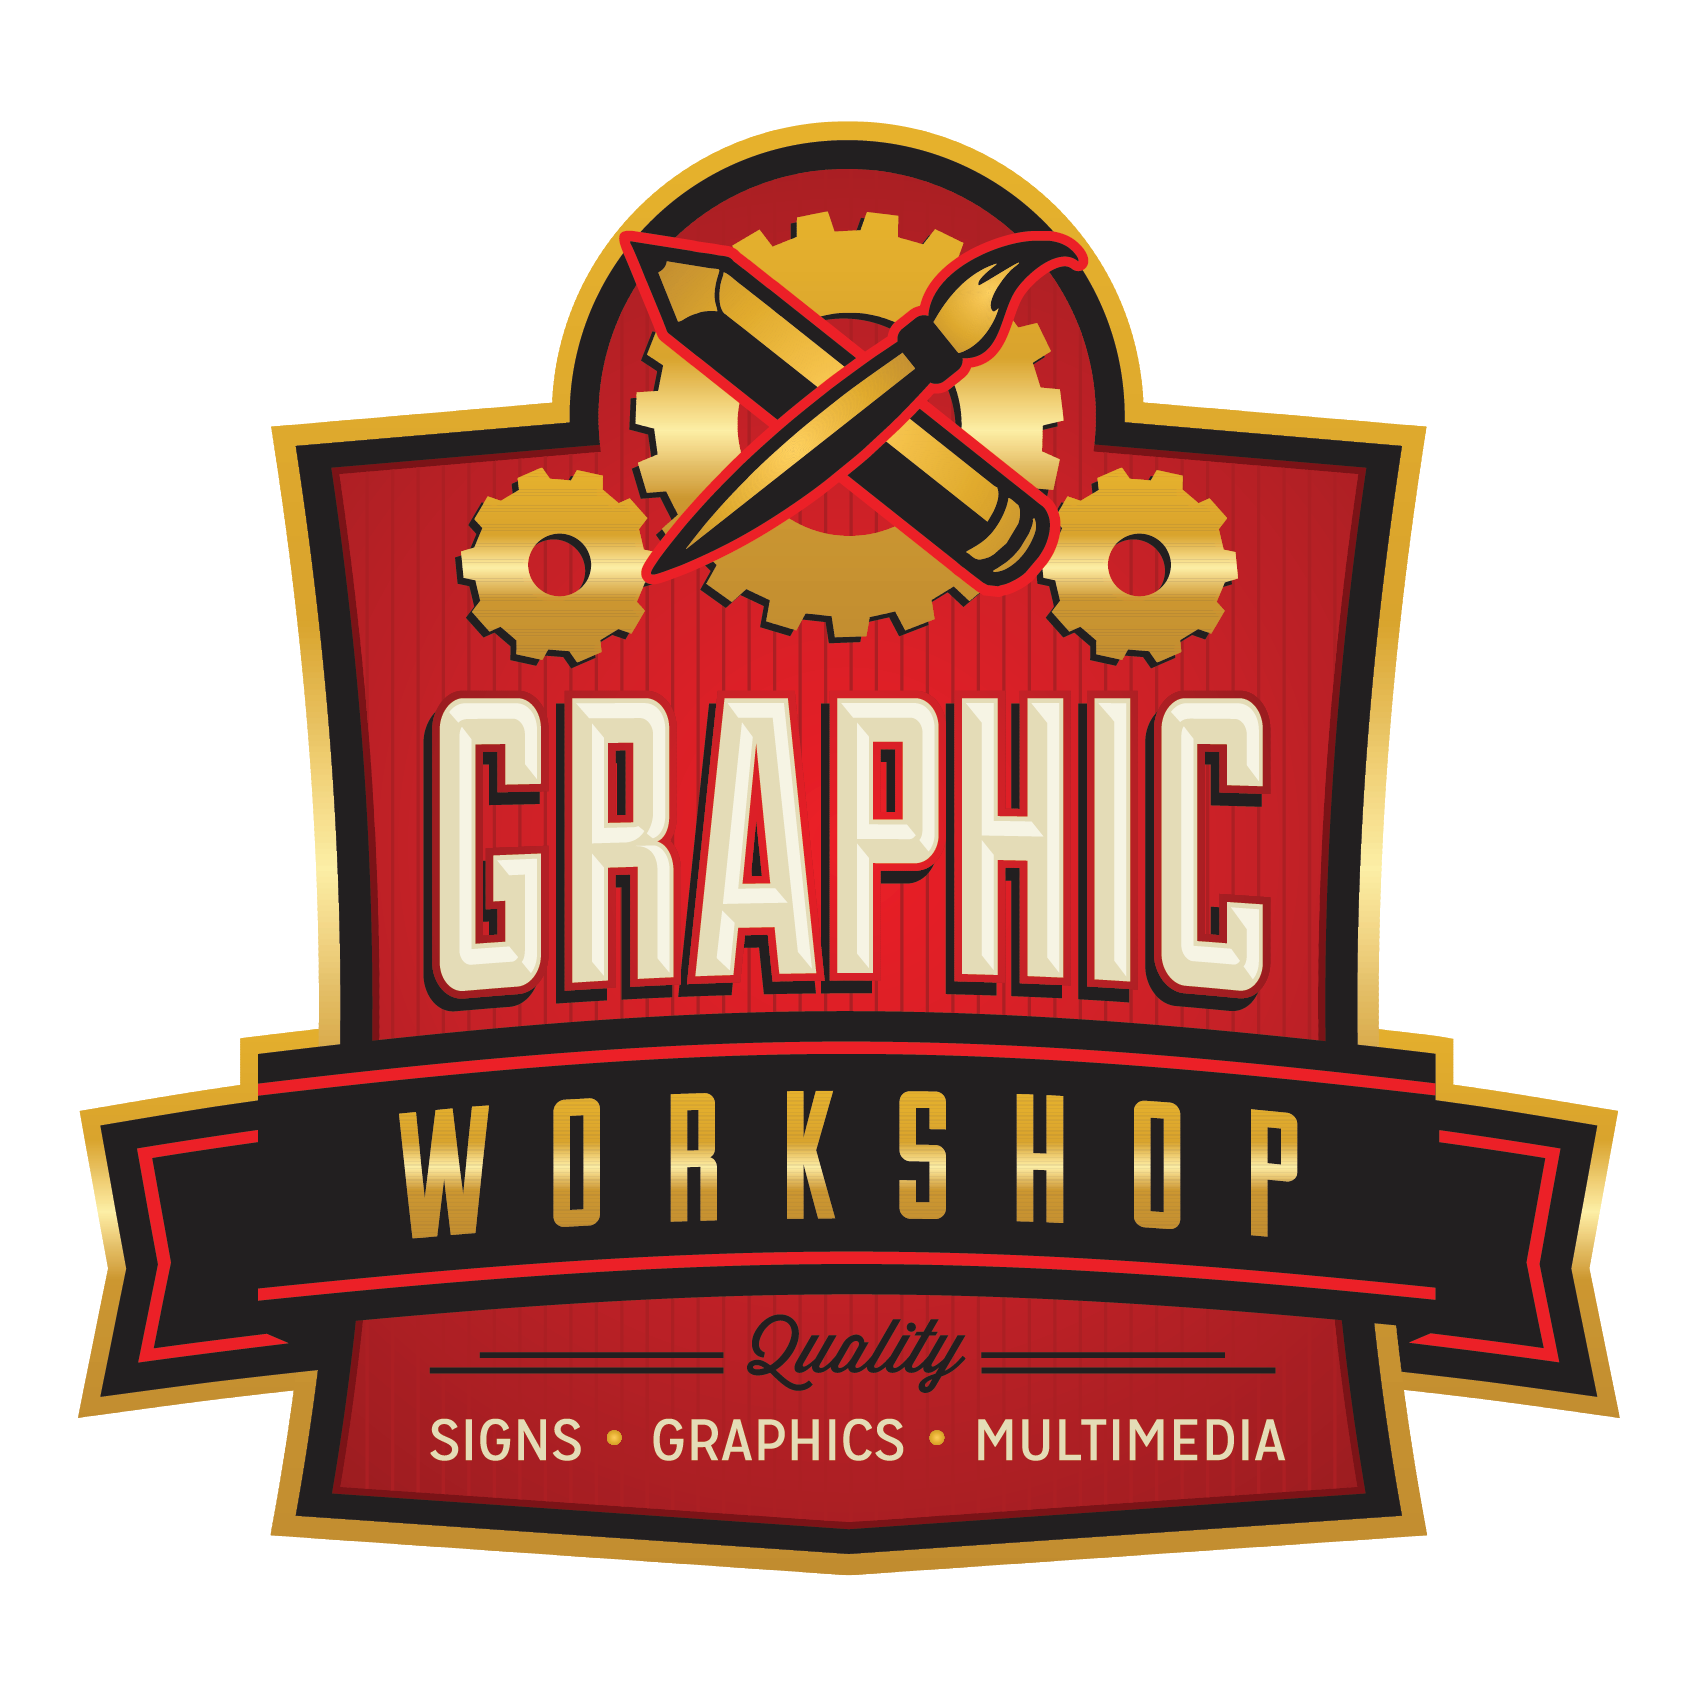 Graphic Workshop